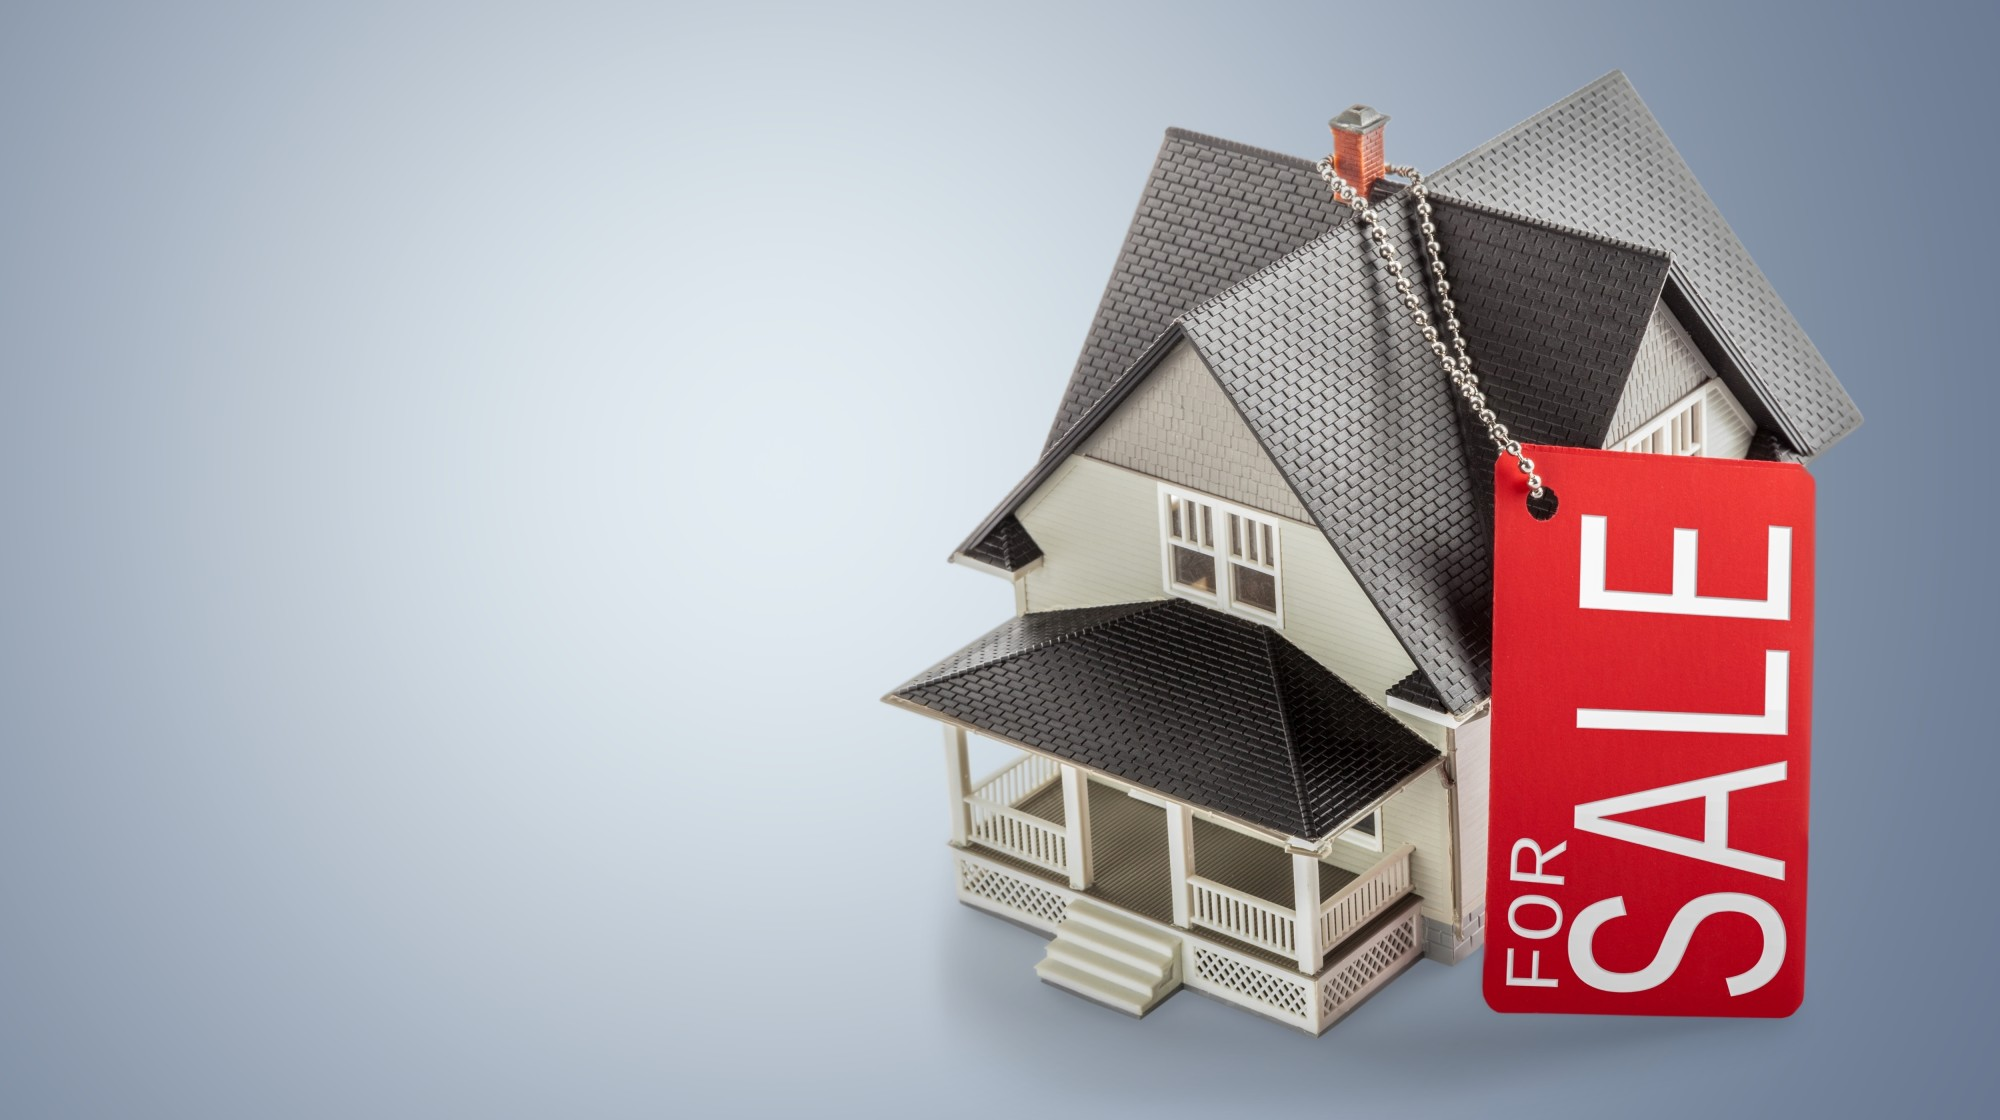 Are Virtual Home Sales the New Norm? Changes in Home Showings